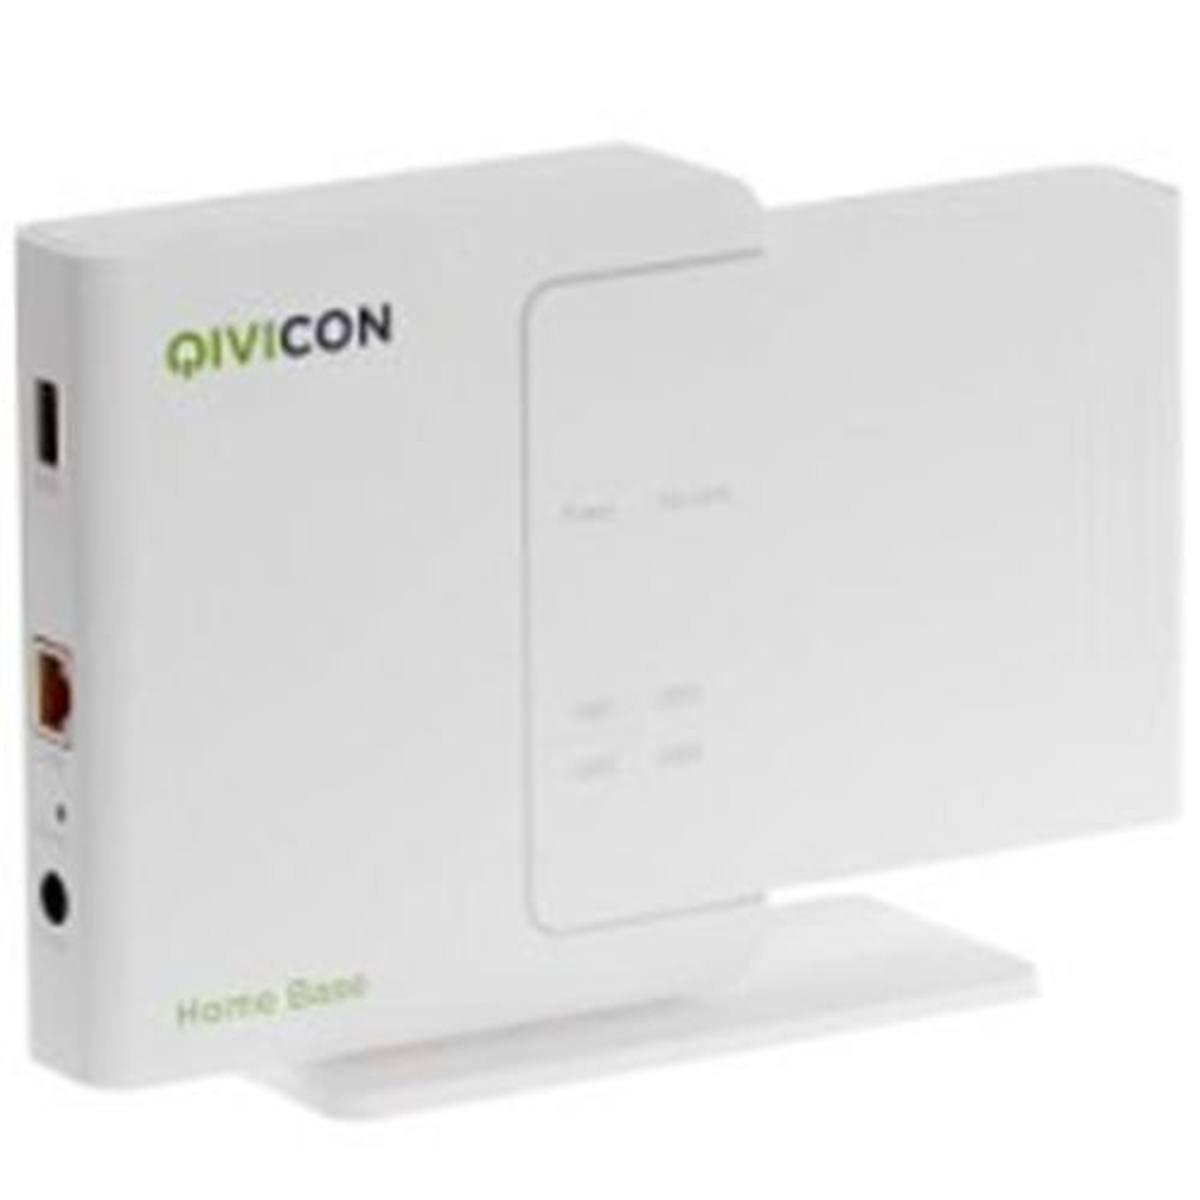 QIVICON Smart Home Base inkl. APP Lizenzcode #wieneu